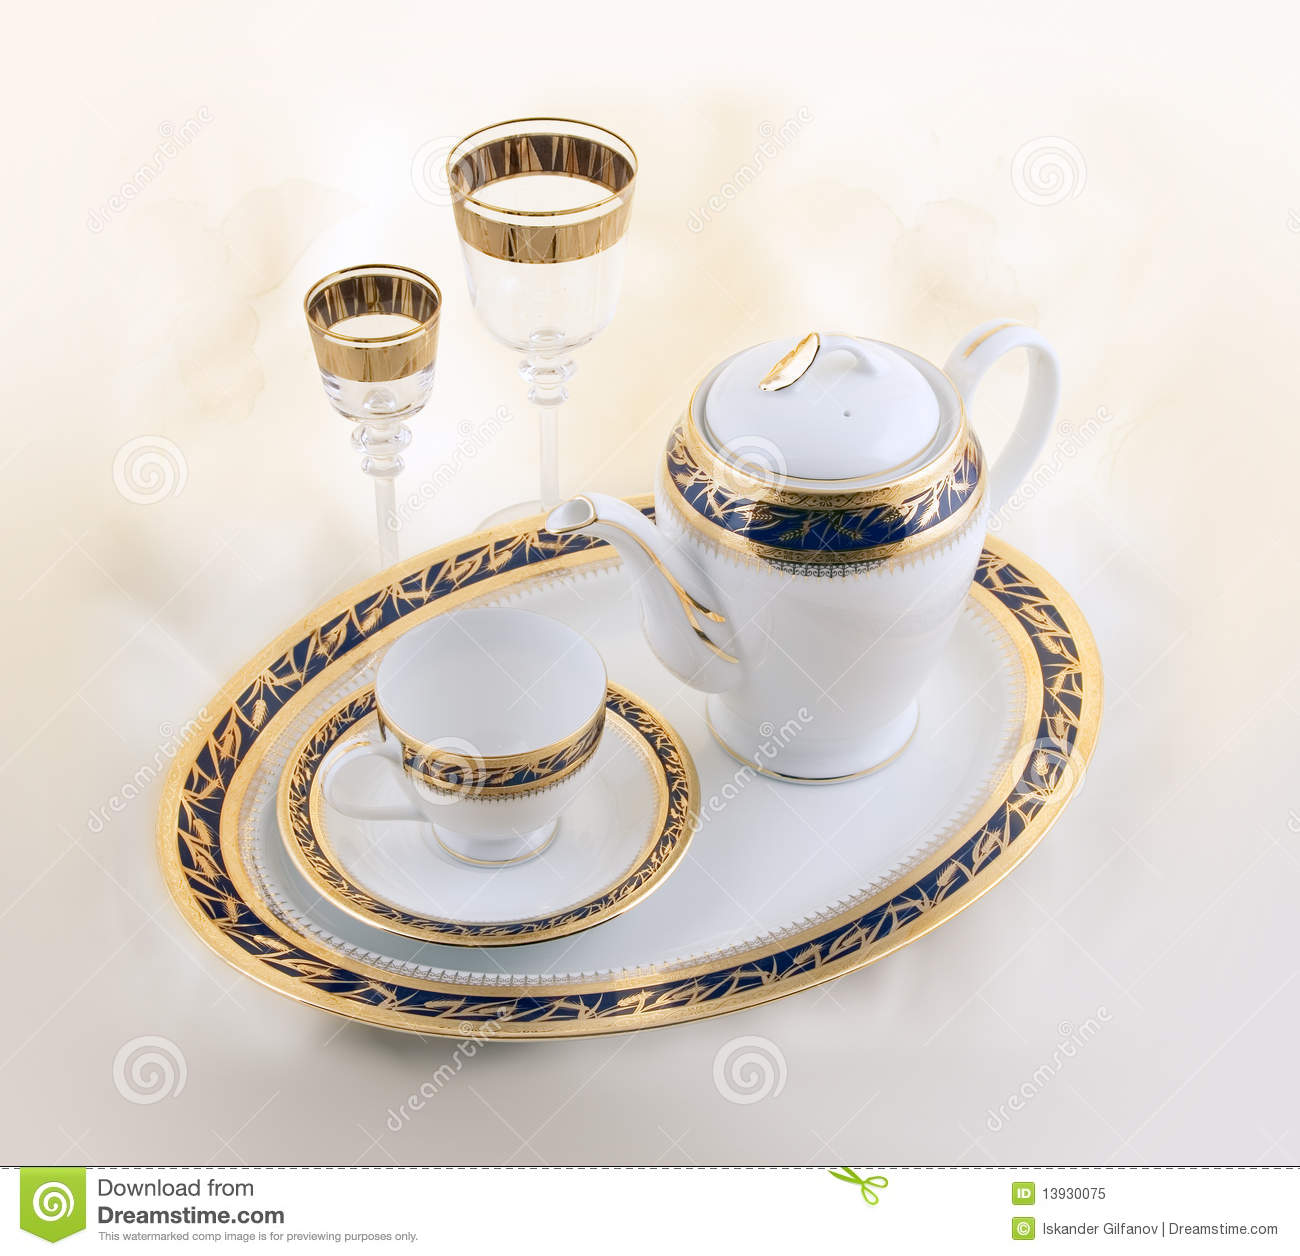 Set Of Ceramic And Glass Crockery Royalty Free Stock Photo